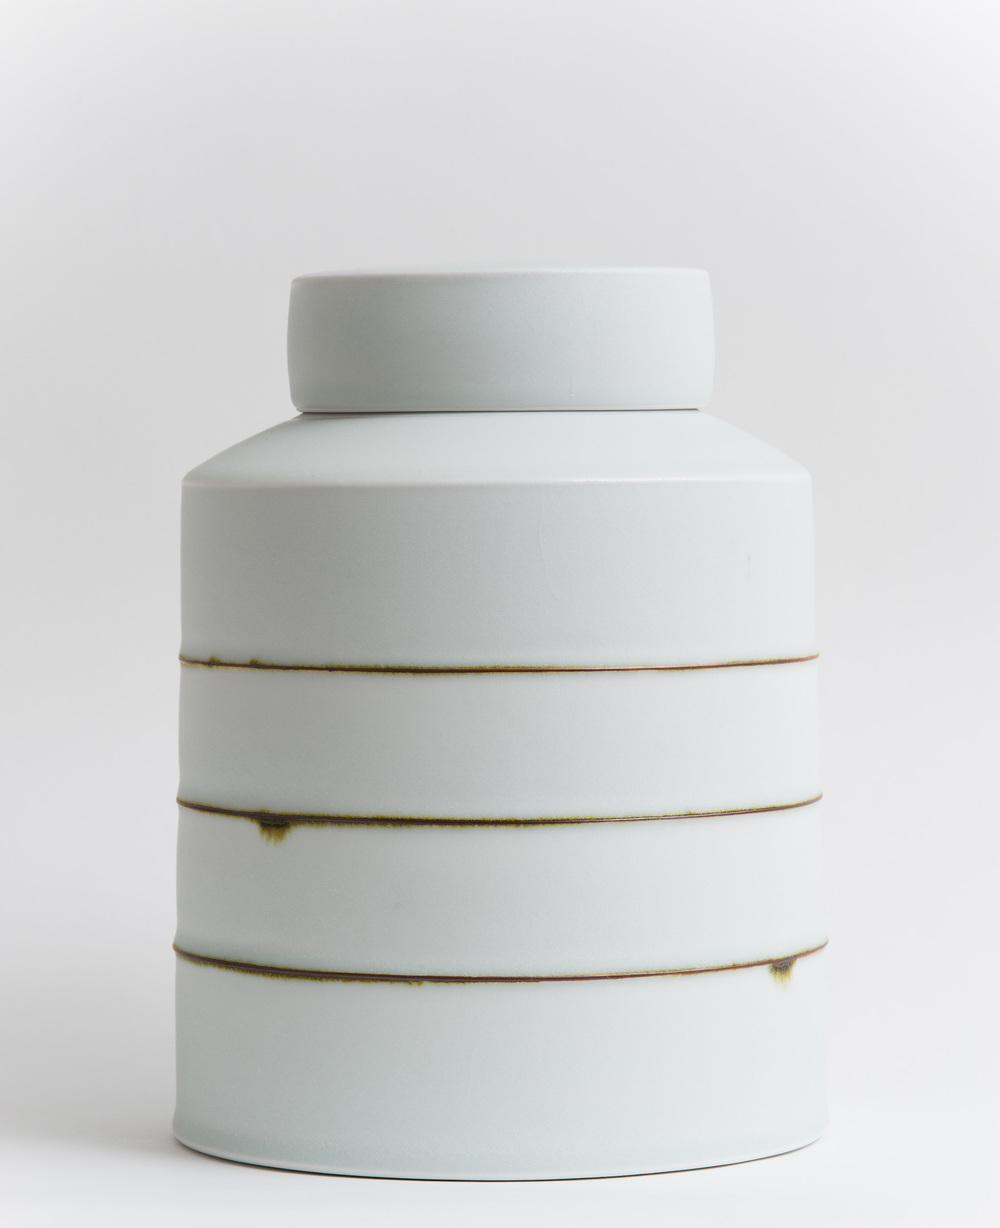 24 Ginger jar 2011.jpg